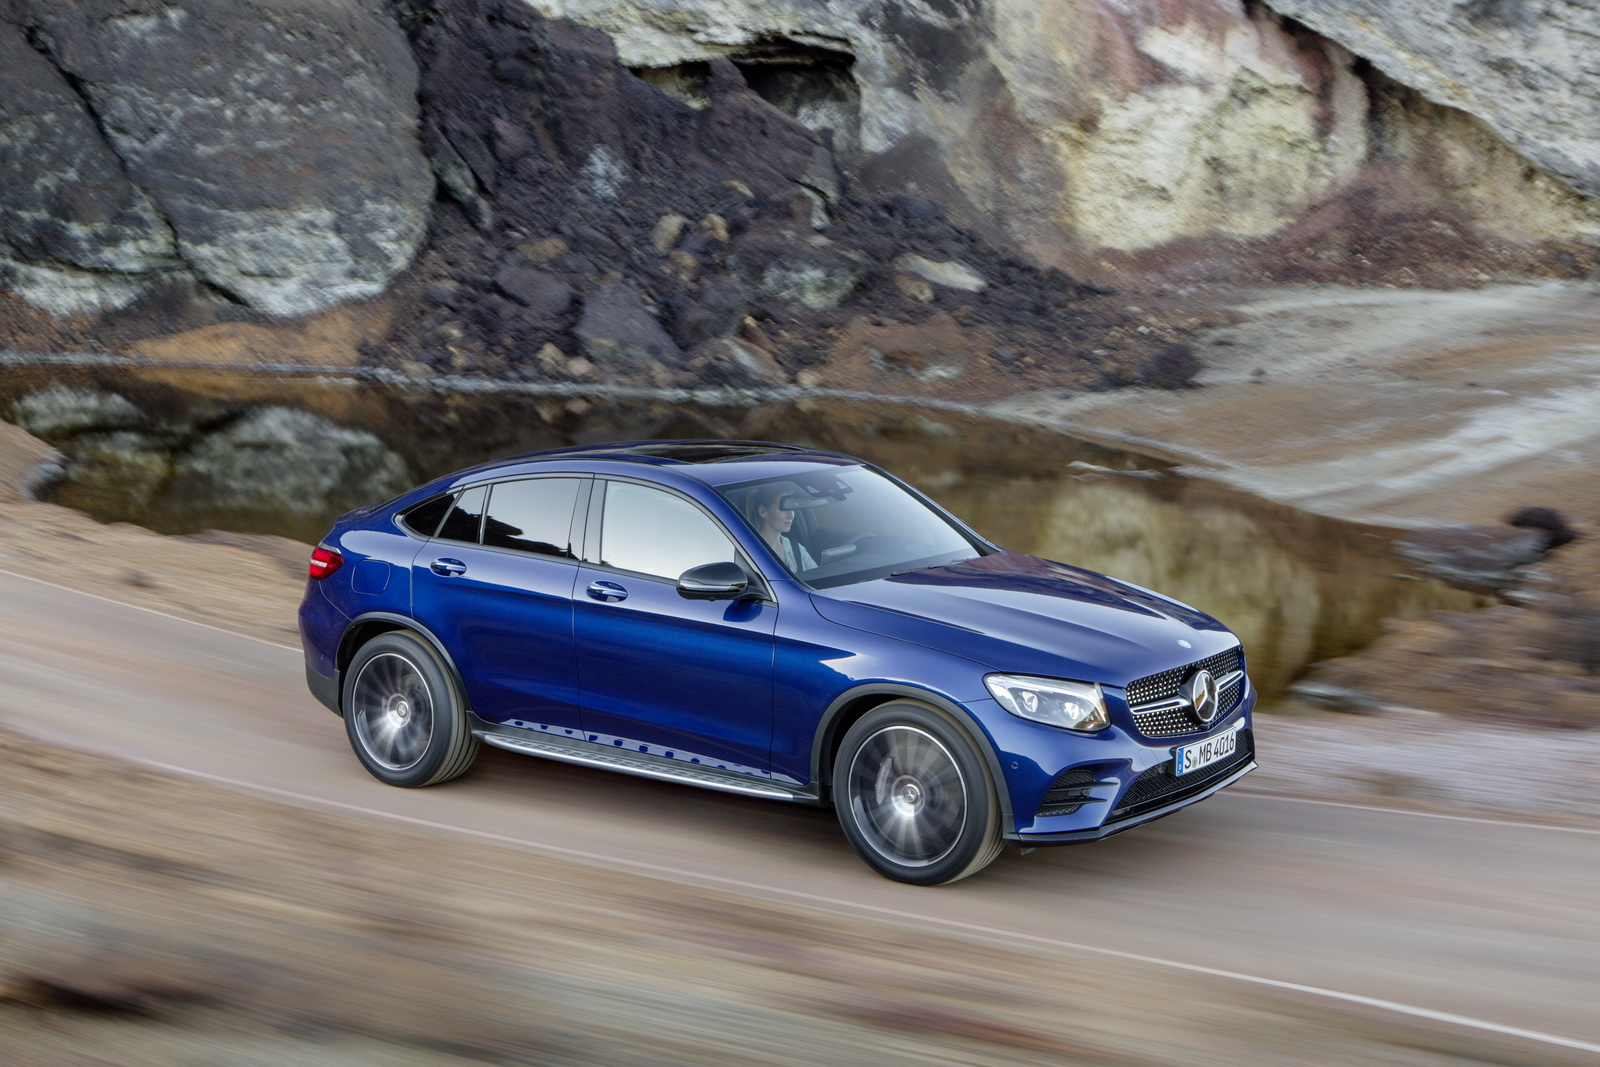 photo gallery - 2016 Mercedes Glc Coupe